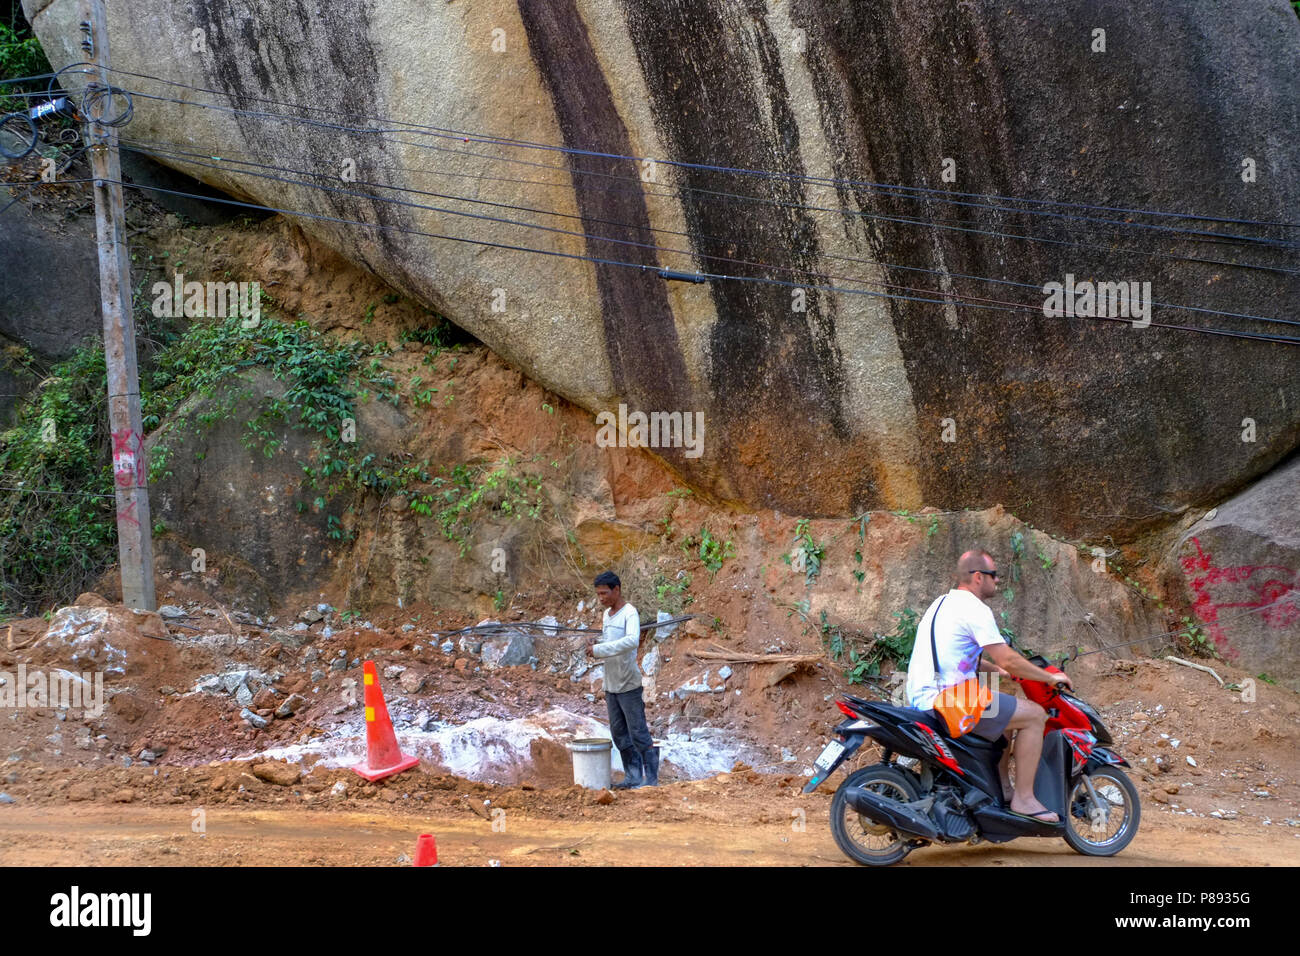 Construction Workers from Myanmar are building new roads through the jungles covering the mountains of the Thai island Koh Phangan, Thailand Stock Photo